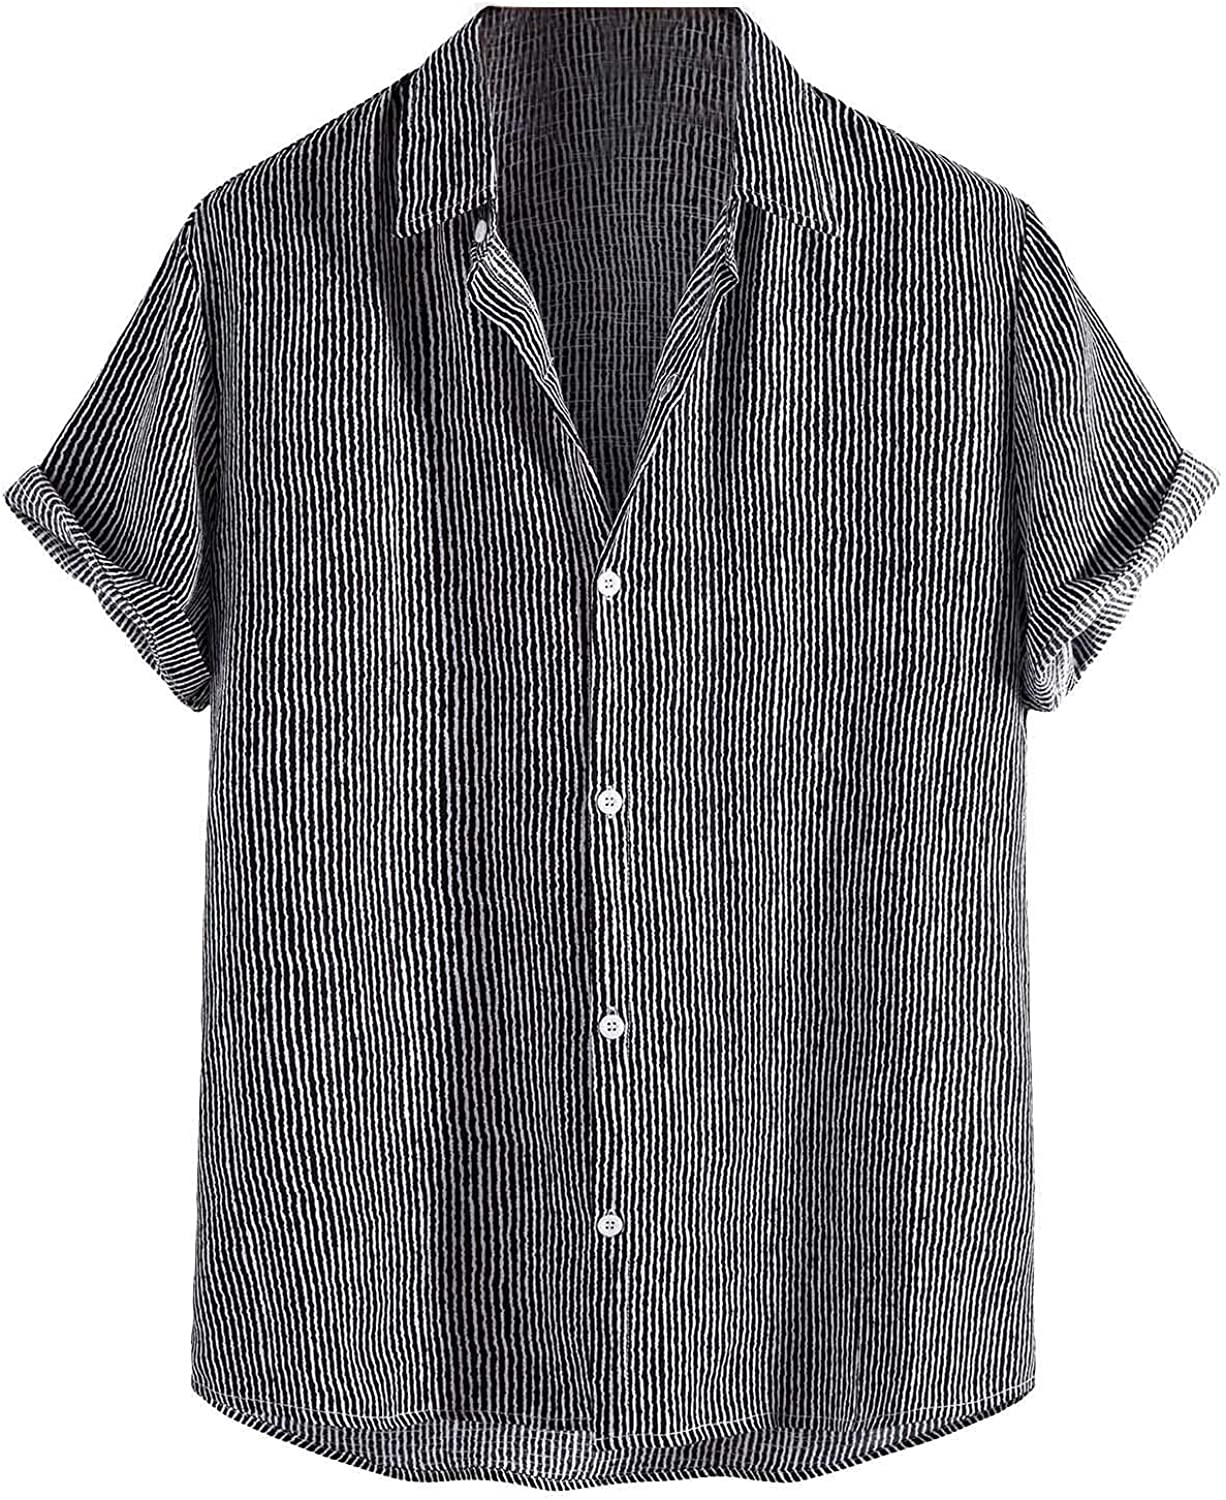 Mens Casual Button Down Shirt Roll Up Short SleeveLoose Vintage Stripe Blouse Summer T-Shirt for Men